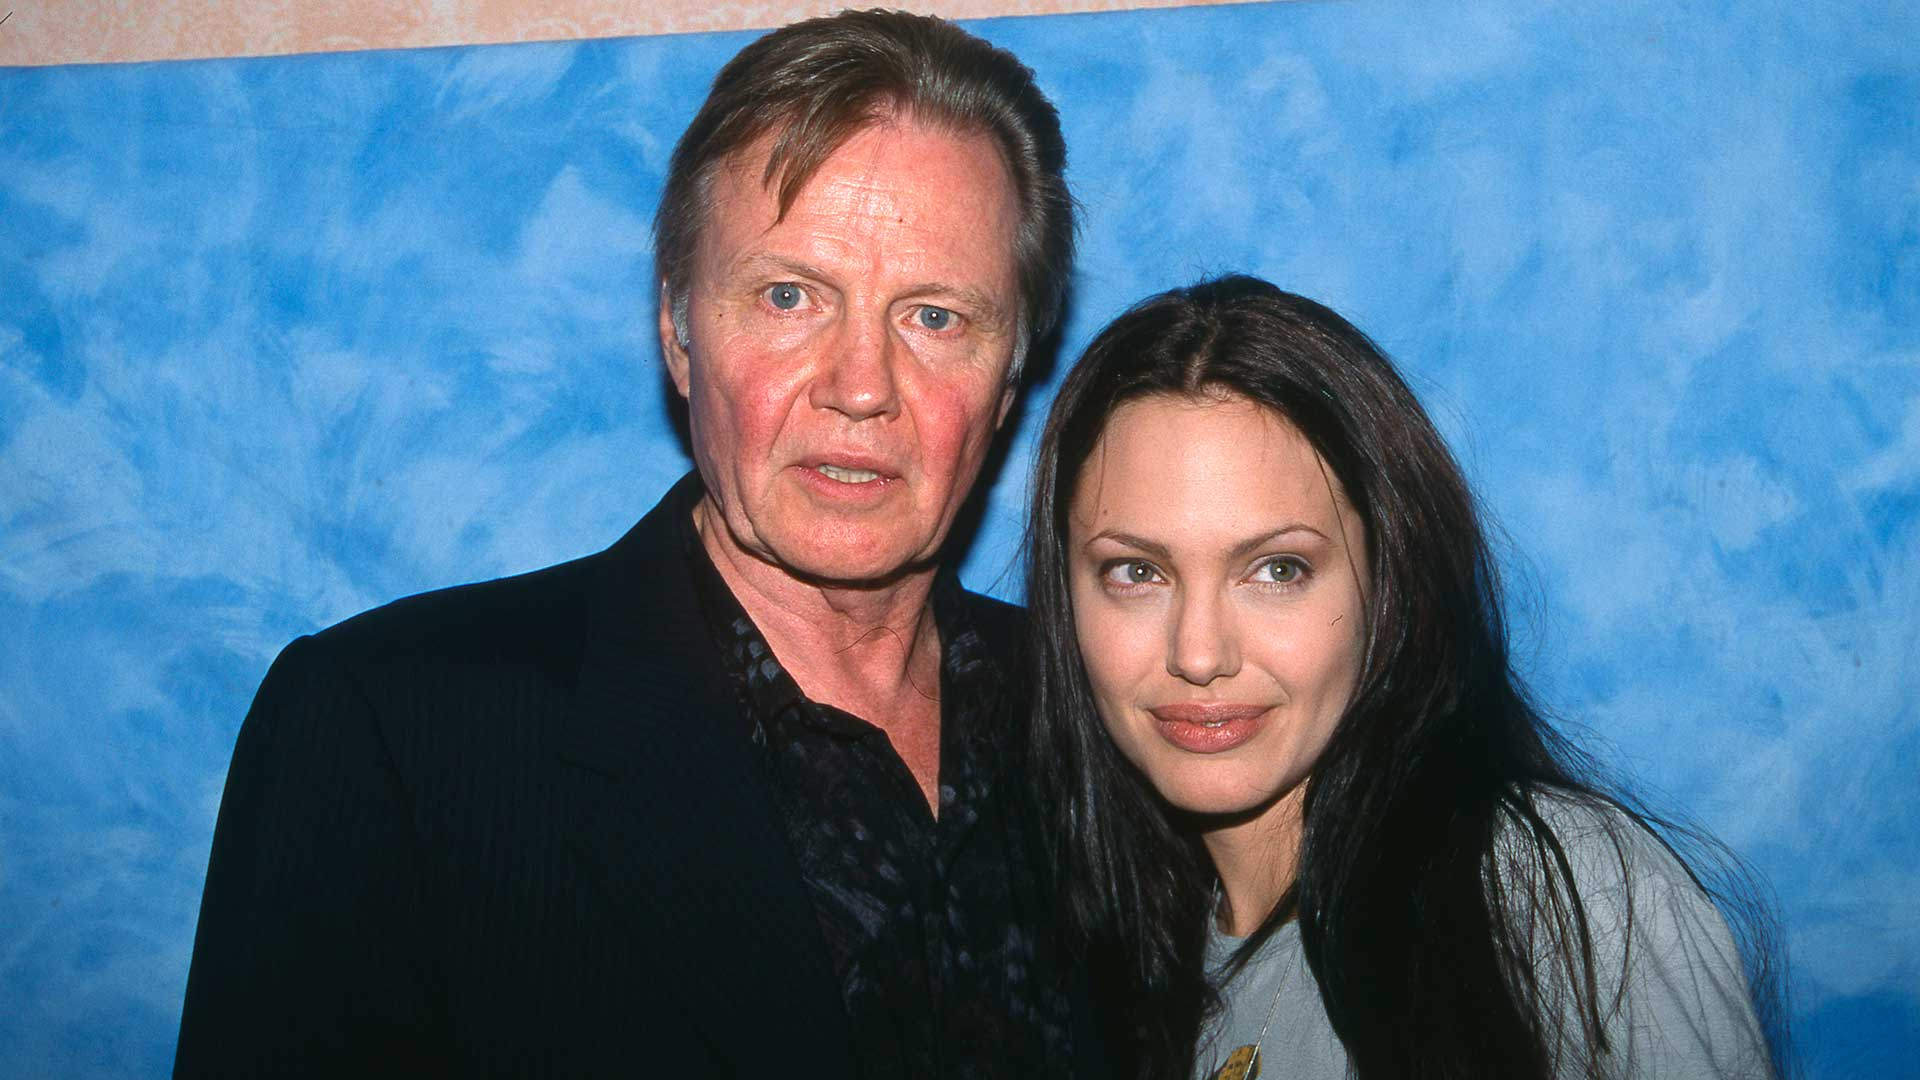 Jon Voight y su hija Angelina Jolie (Grosby Group)